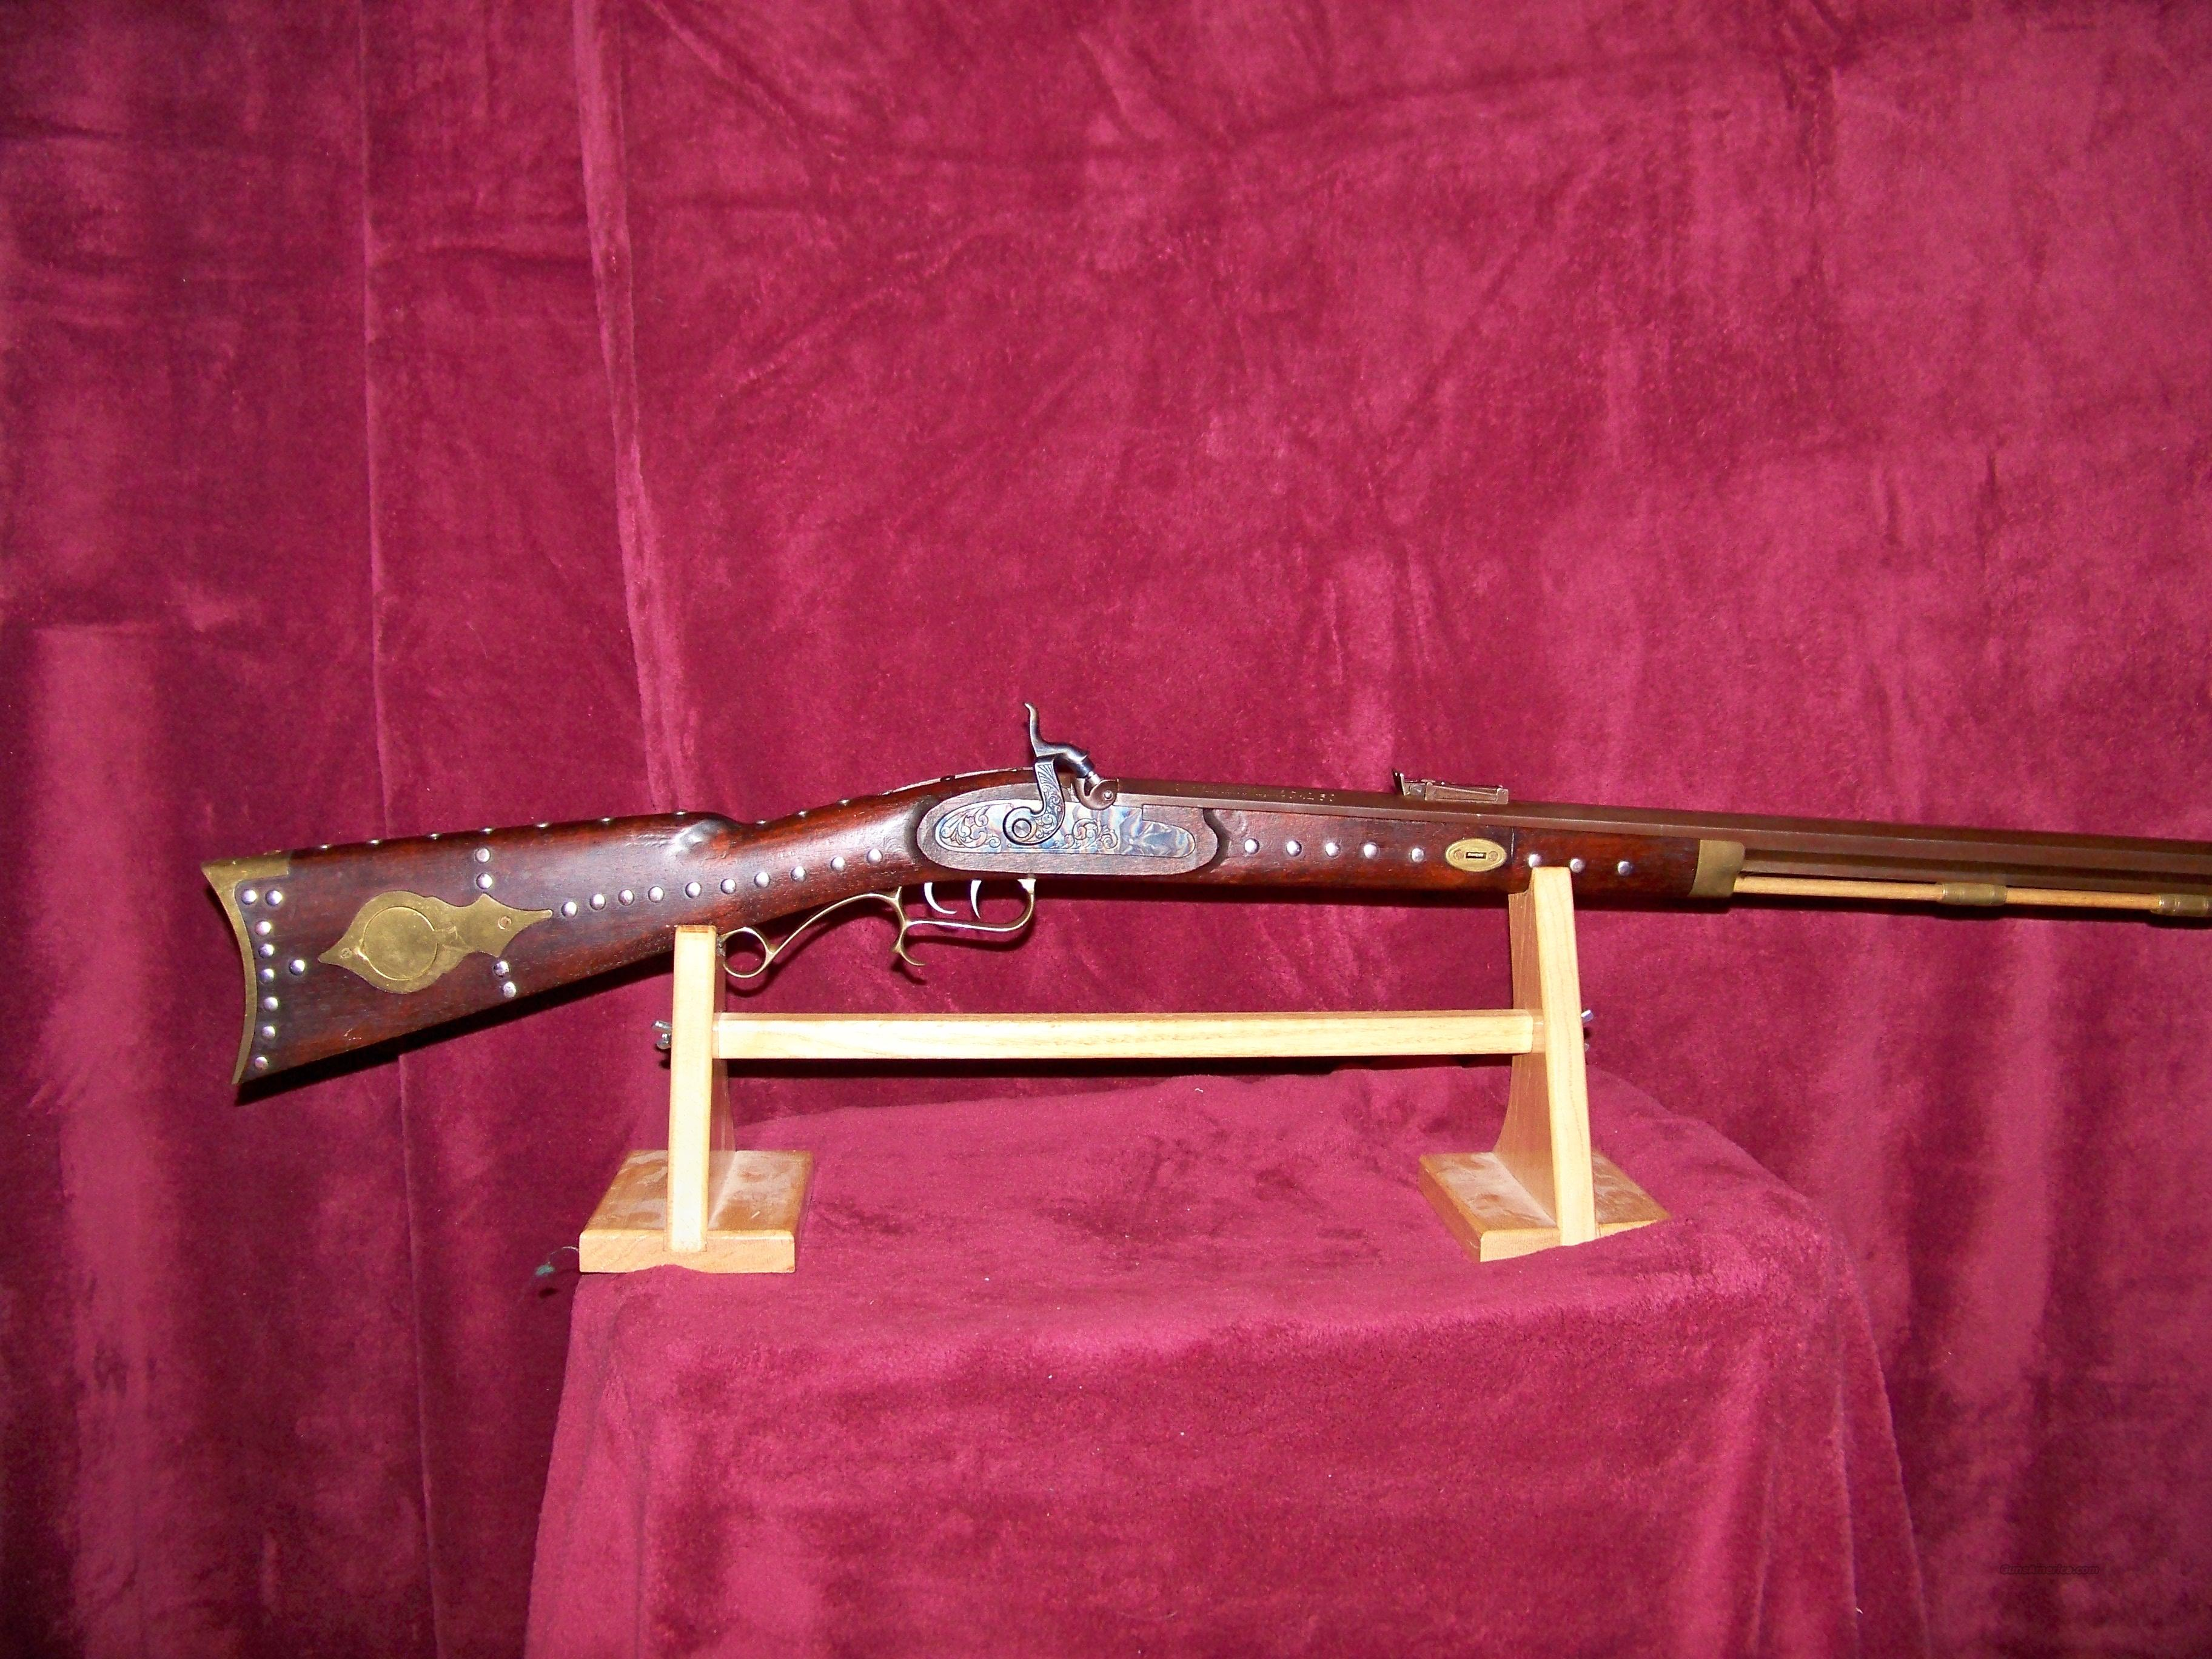 THOMPSON CENTER HAWKINS 50 CALIBER  Guns > Rifles > Muzzleloading Modern & Replica Rifles (perc) > Replica Muzzleloaders